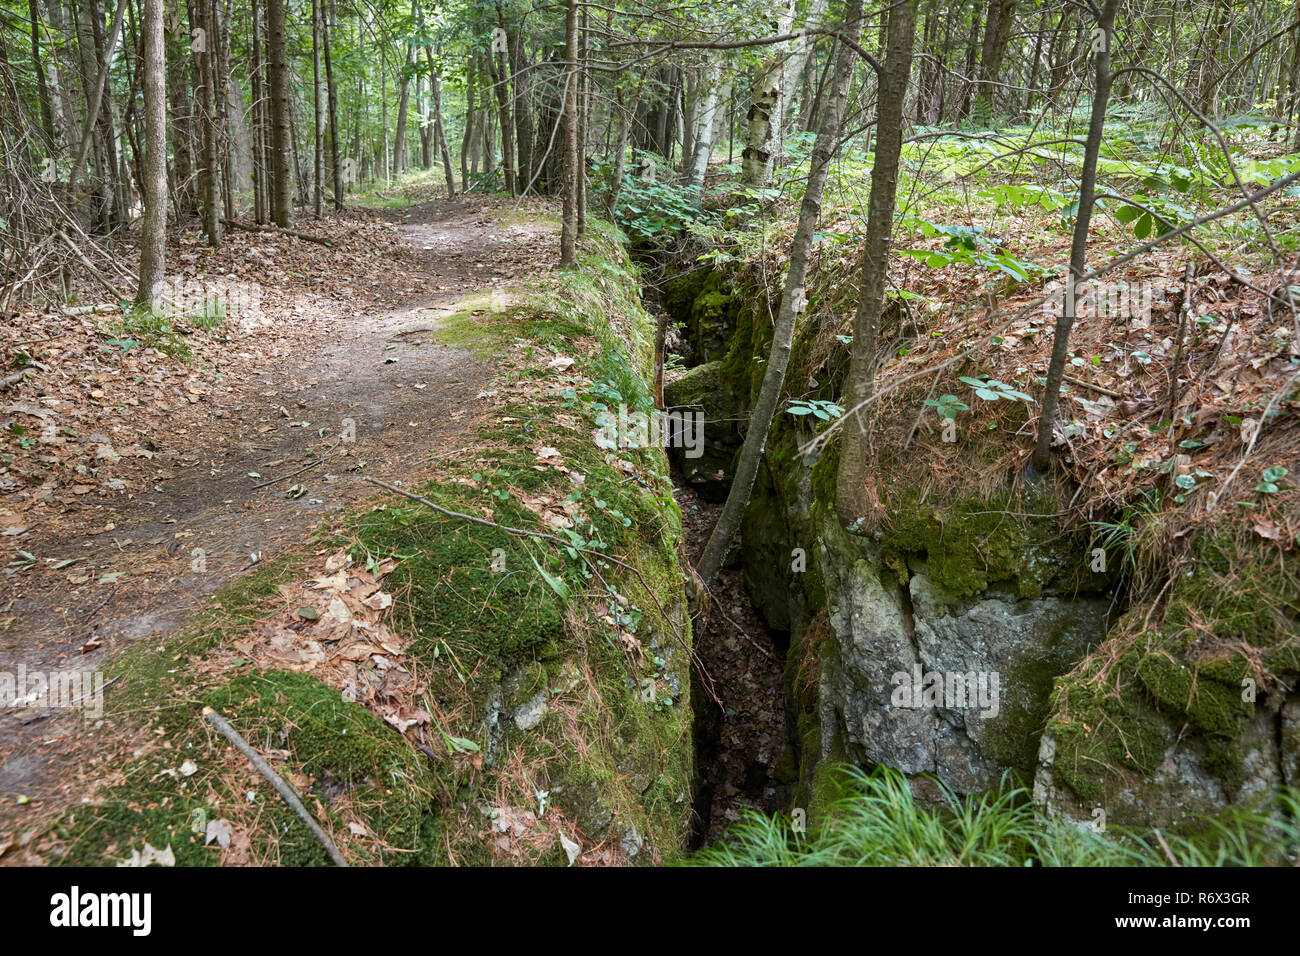 A large crevice in a forest caused by the collapse of a nearby sinkhole in Mystery Valley Karst Preserve, Northern Michigan - Stock Image